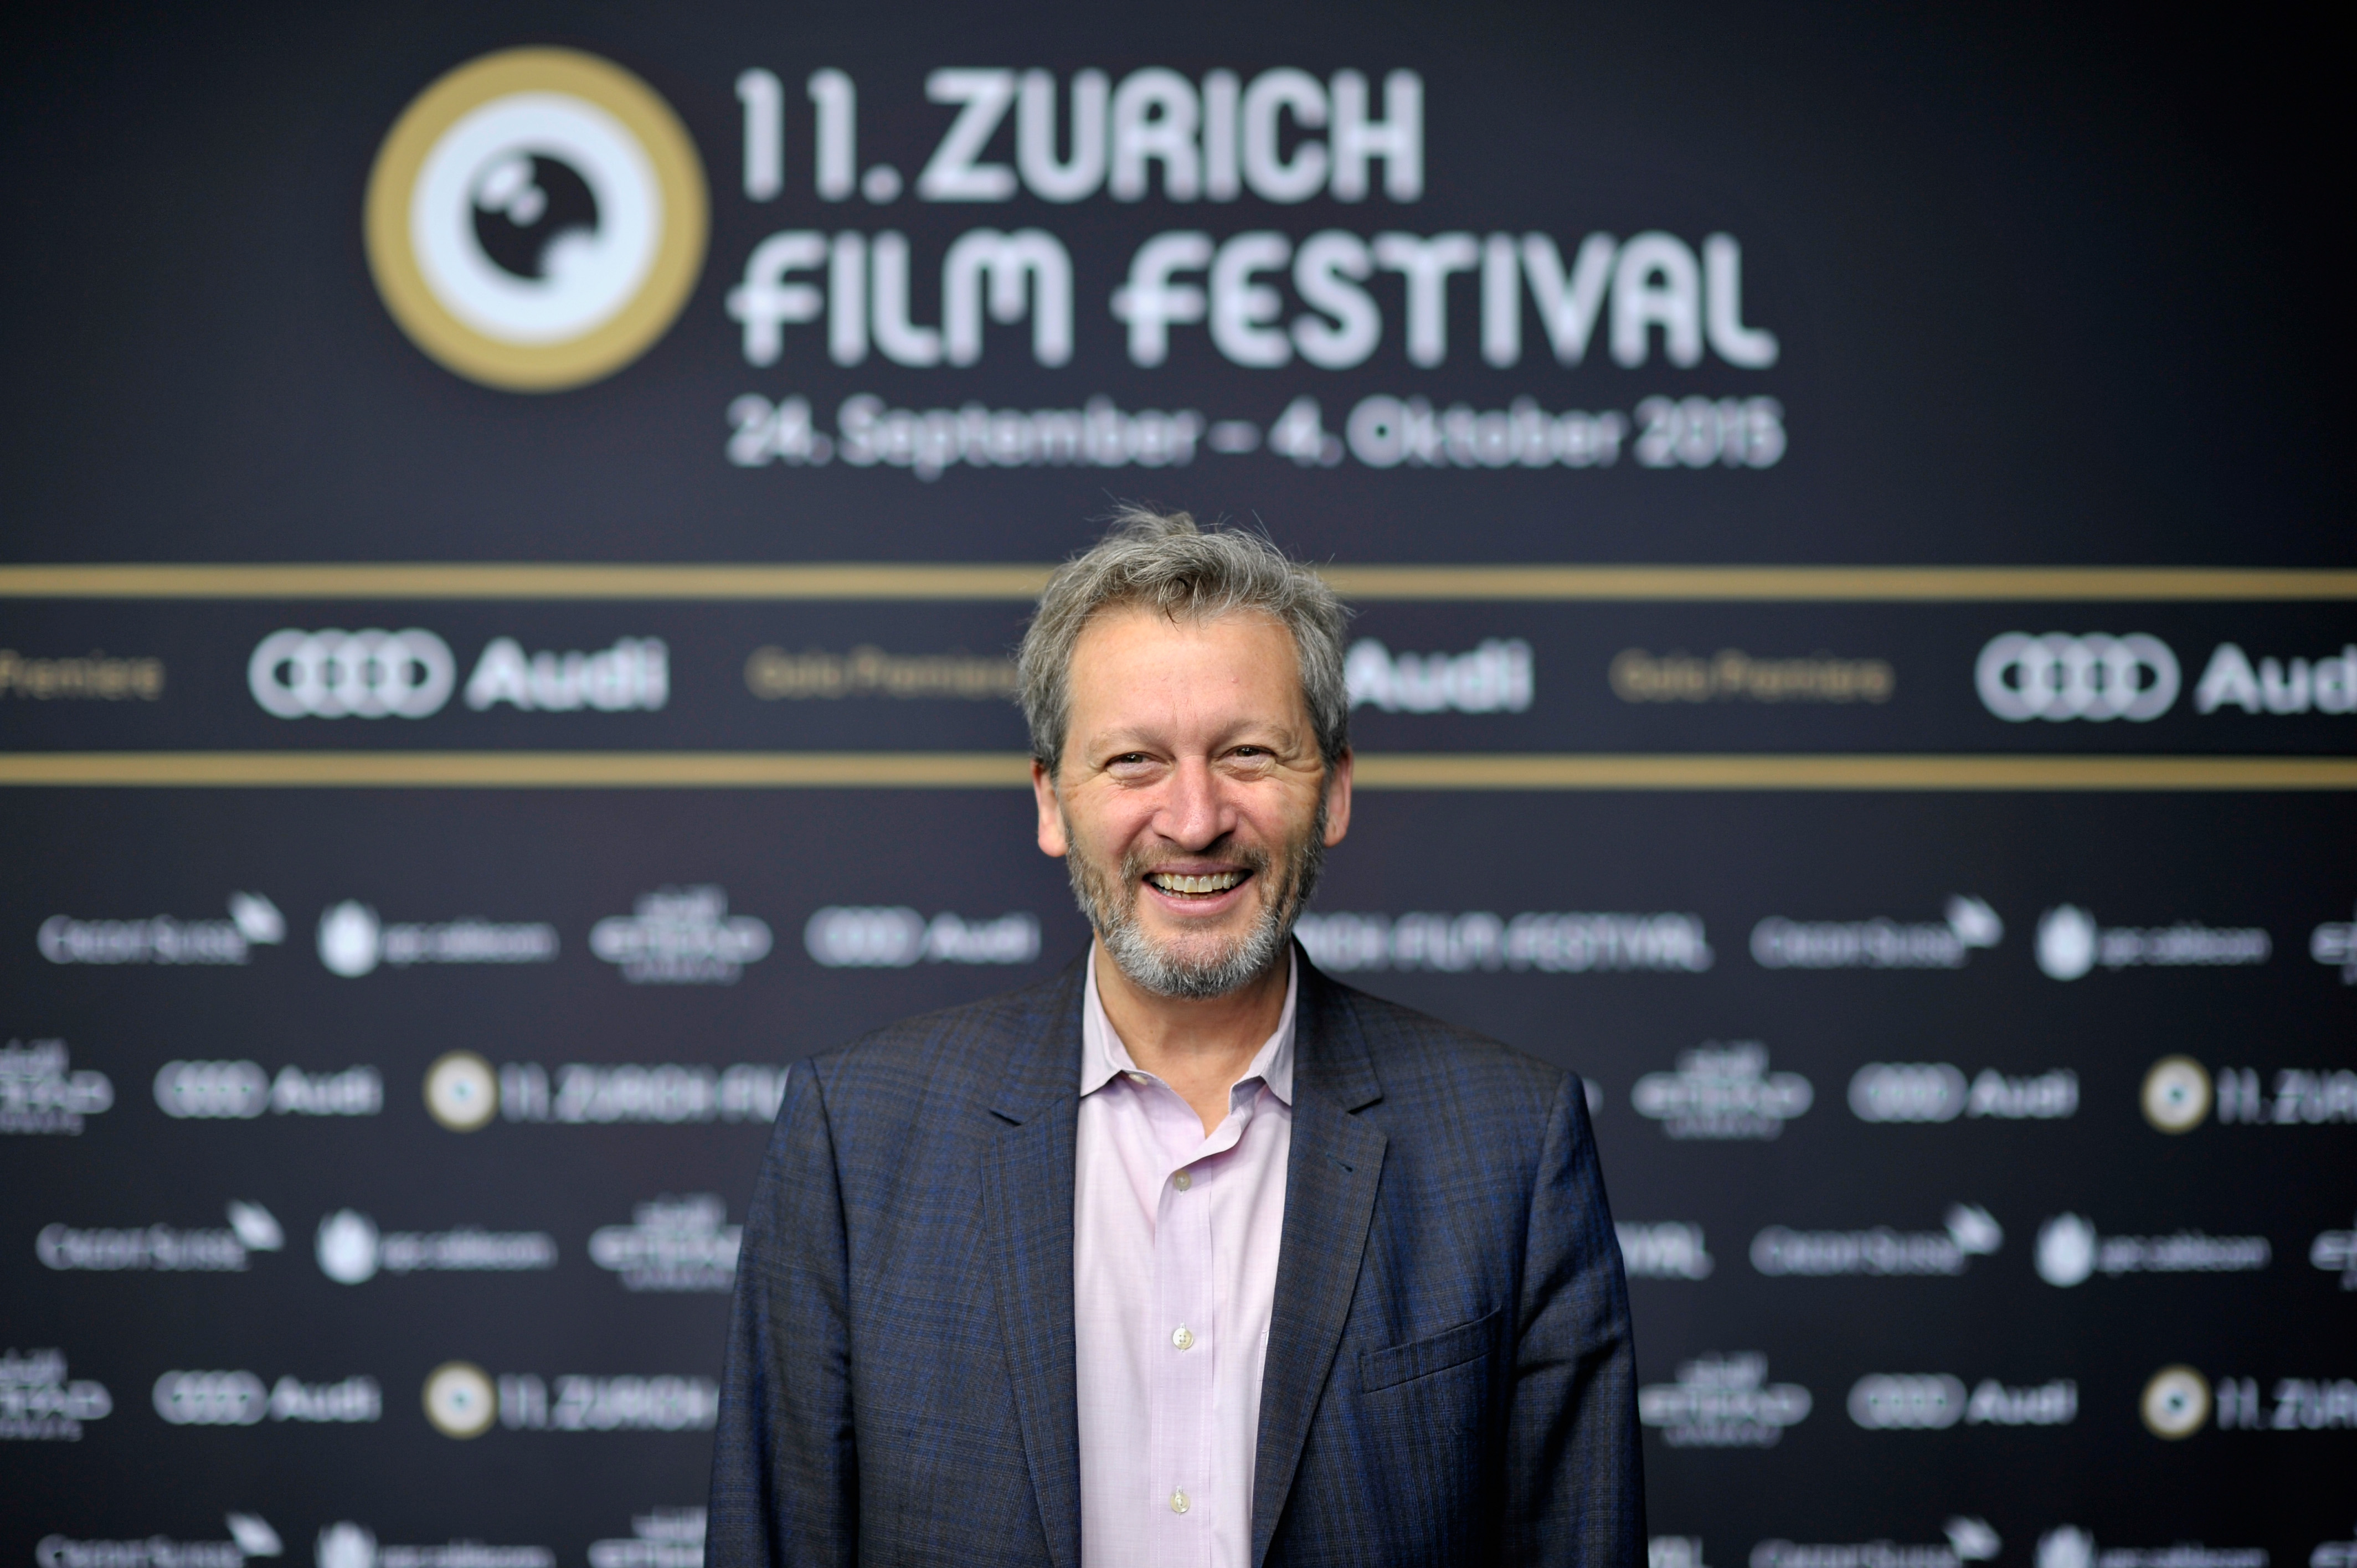 'A Walk In The Woods' Premiere - Zurich Film Festival 2015